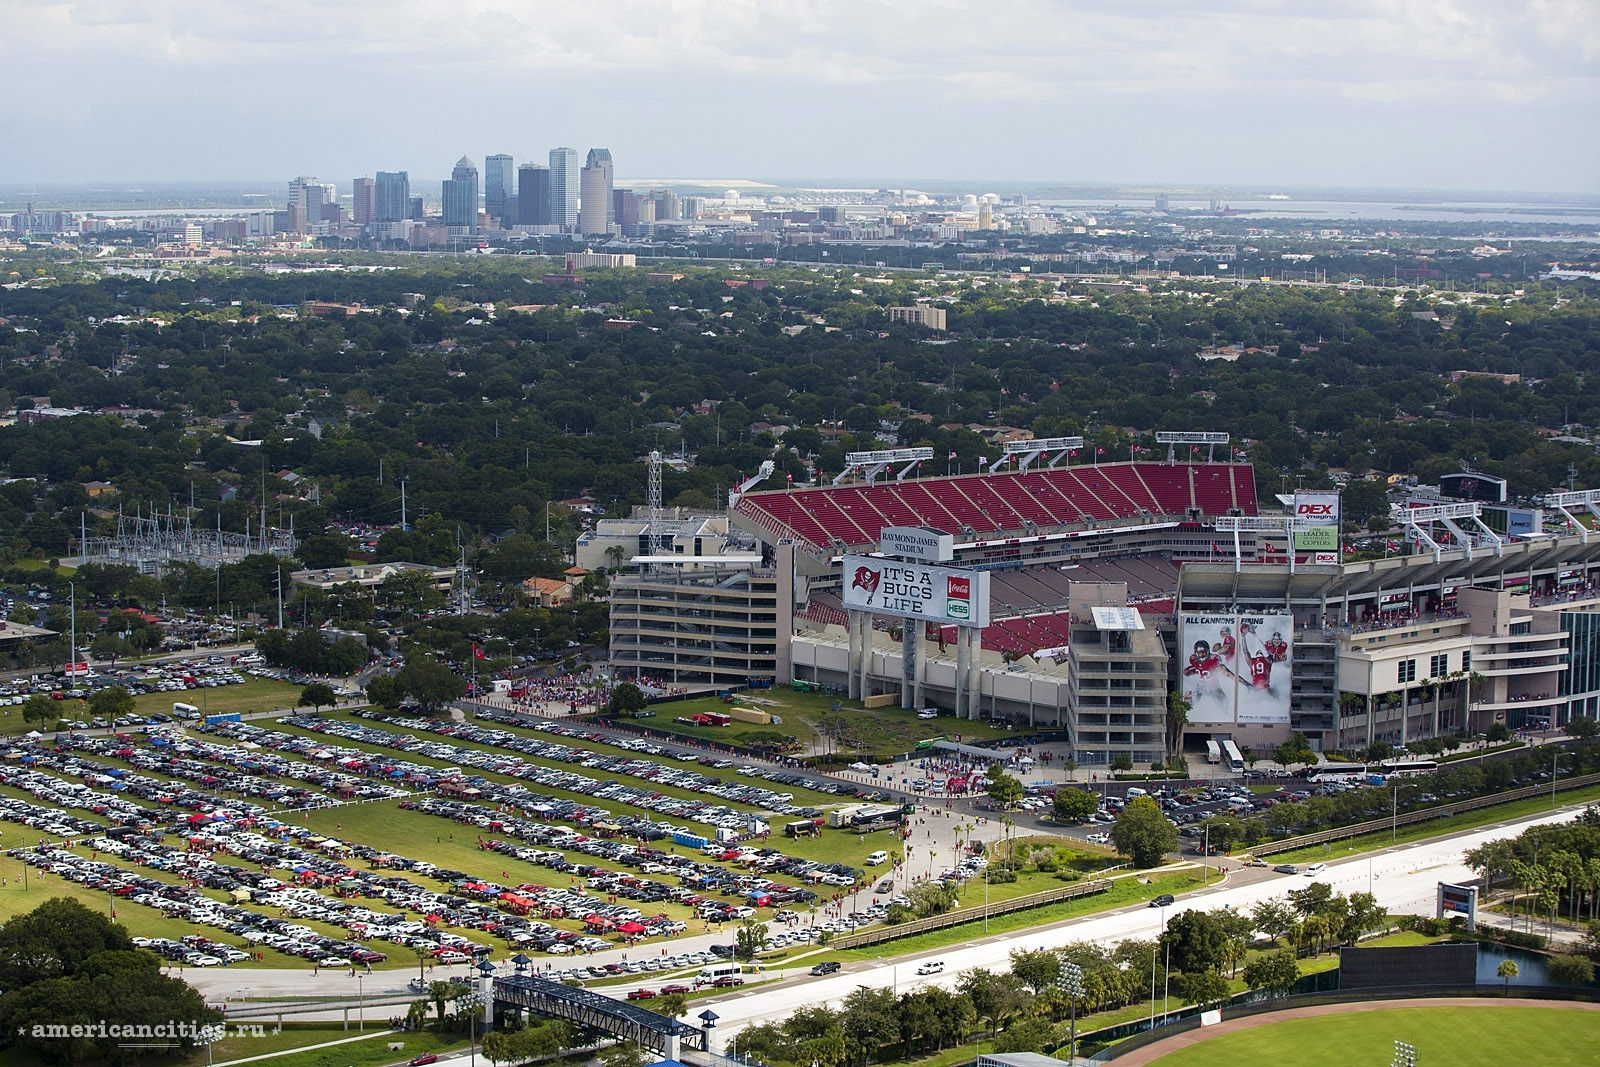 Футбольный стадион Raymond James Stadium